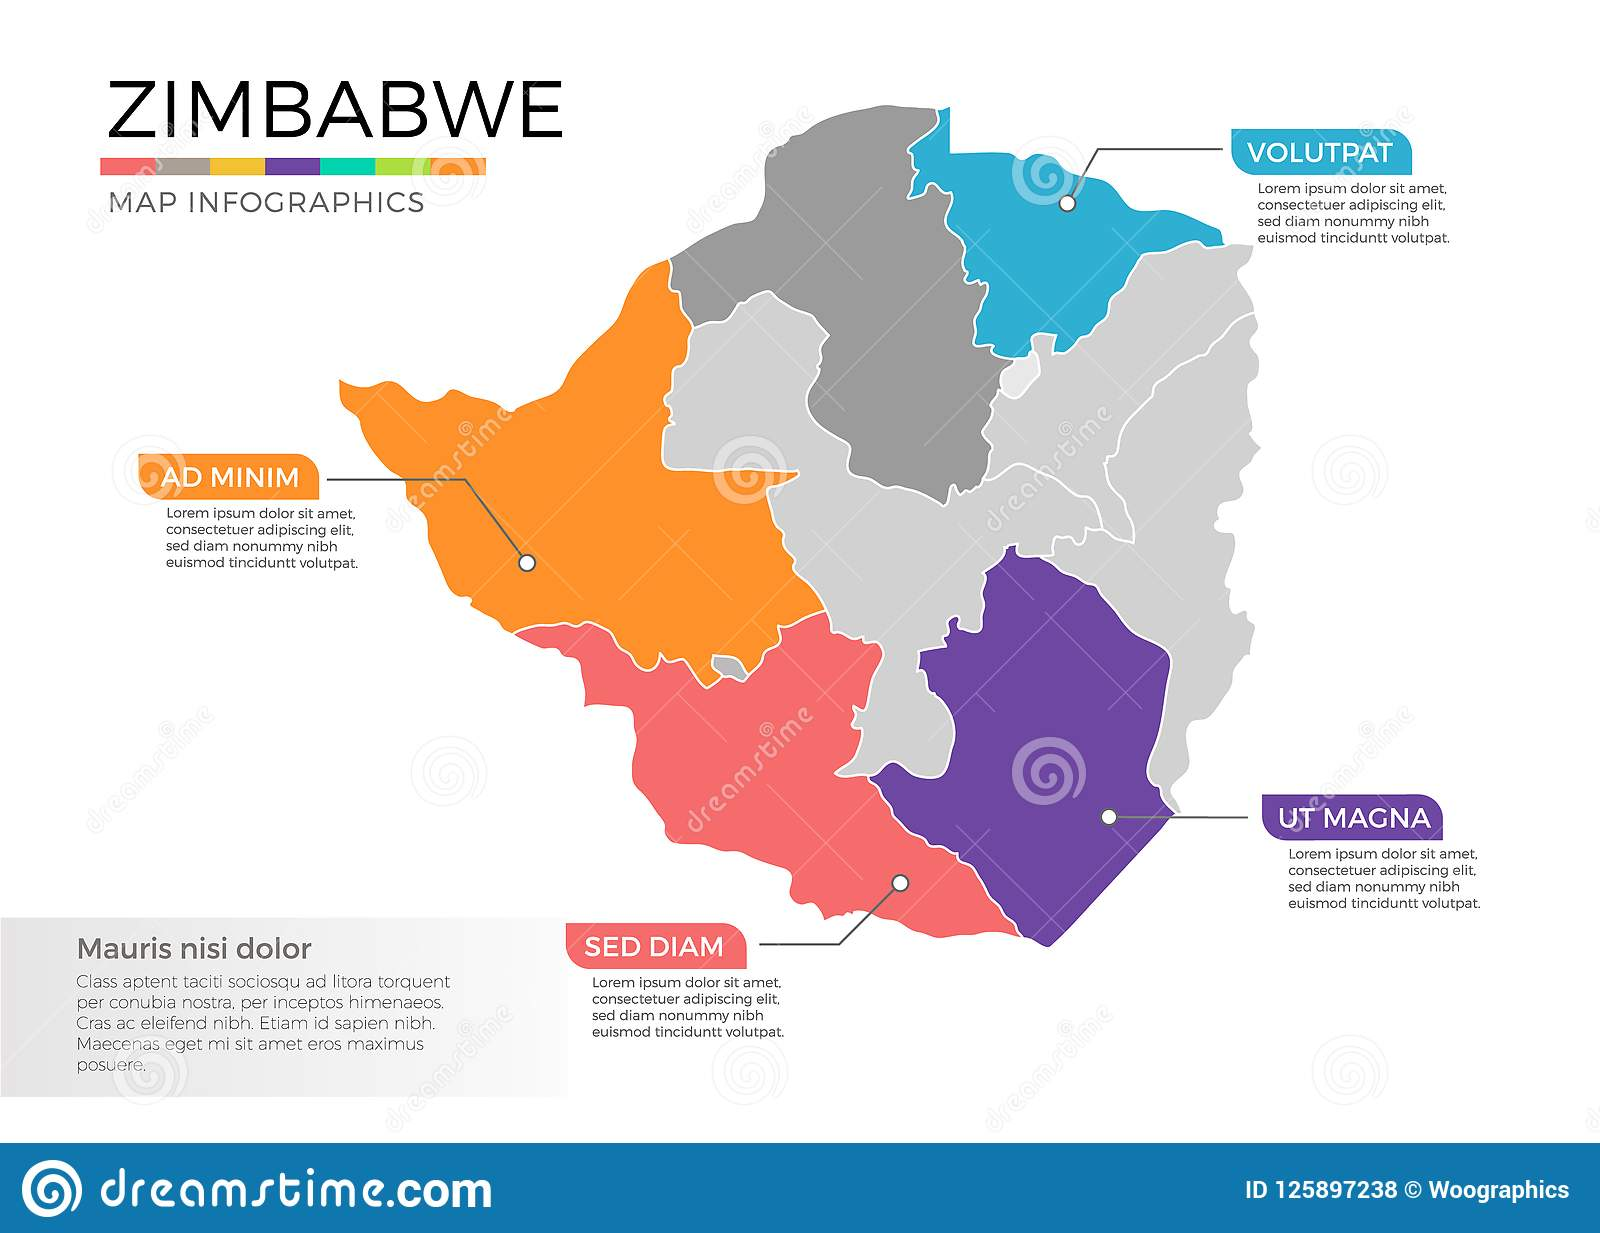 Zimbabwe Map Infographics Vector Template With Regions And Pointer on malaysia regions map, finland regions map, afghanistan regions map, moldova regions map, nicaragua regions map, el salvador regions map, zimbabwe resources, uk regions map, cameroon regions map, united states of america regions map, africa regions map, hungary regions map, bahrain regions map, uganda regions map, mozambique regions map, armenia regions map, latvia regions map, venezuela regions map, guinea regions map, central african republic regions map,